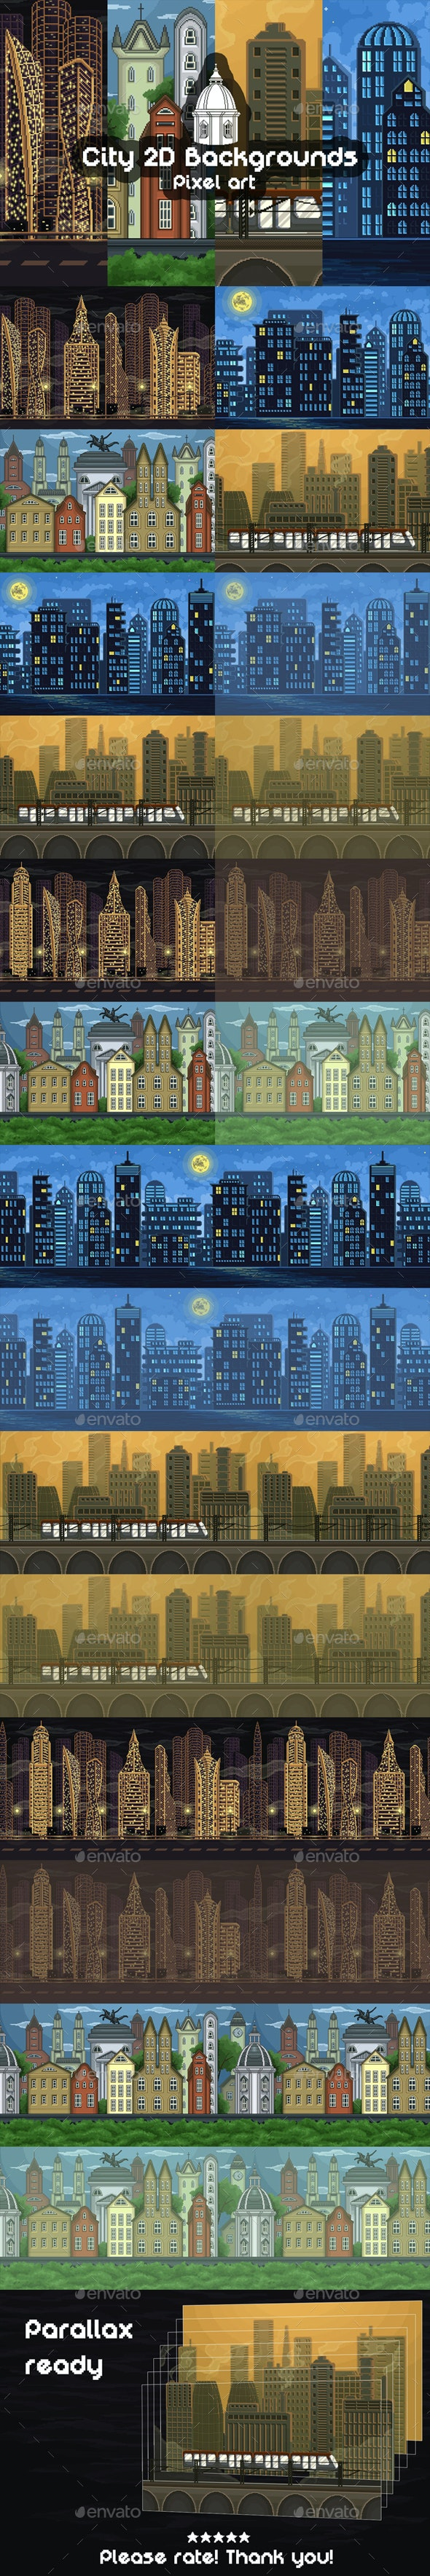 2D Game City Backgrounds Pixel Art - Backgrounds Game Assets